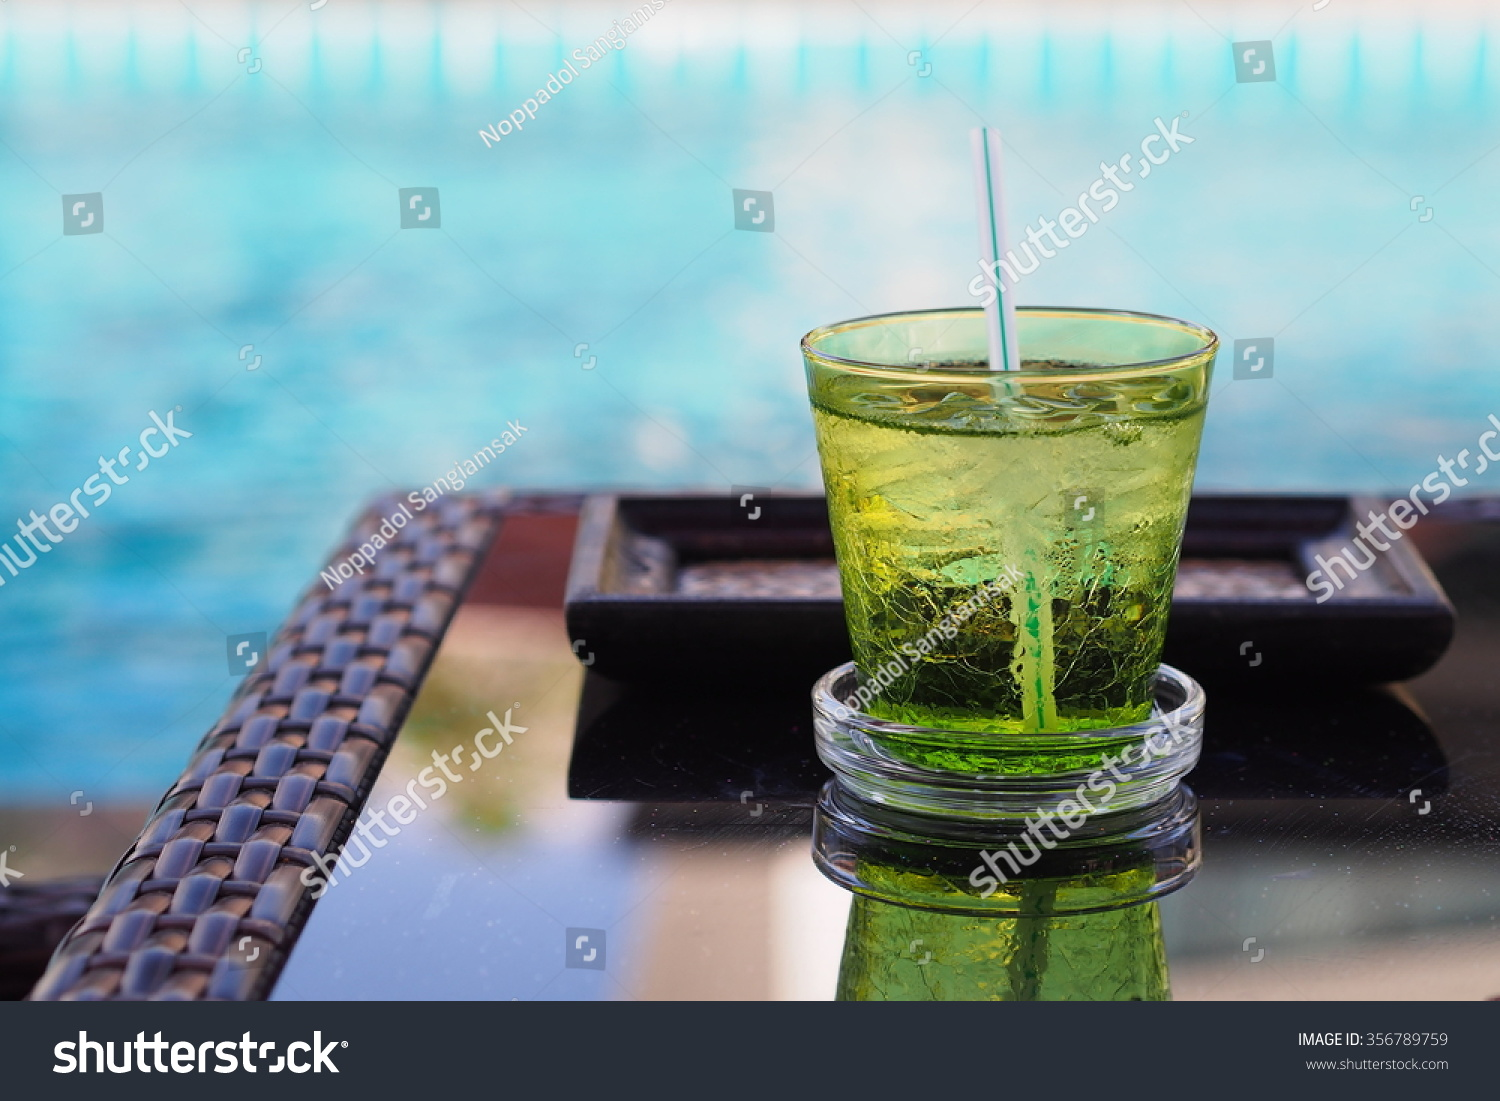 A Green Glass Of Drinking Water On A Table Beside Swimming Pool Stock Photo 356789759 Shutterstock